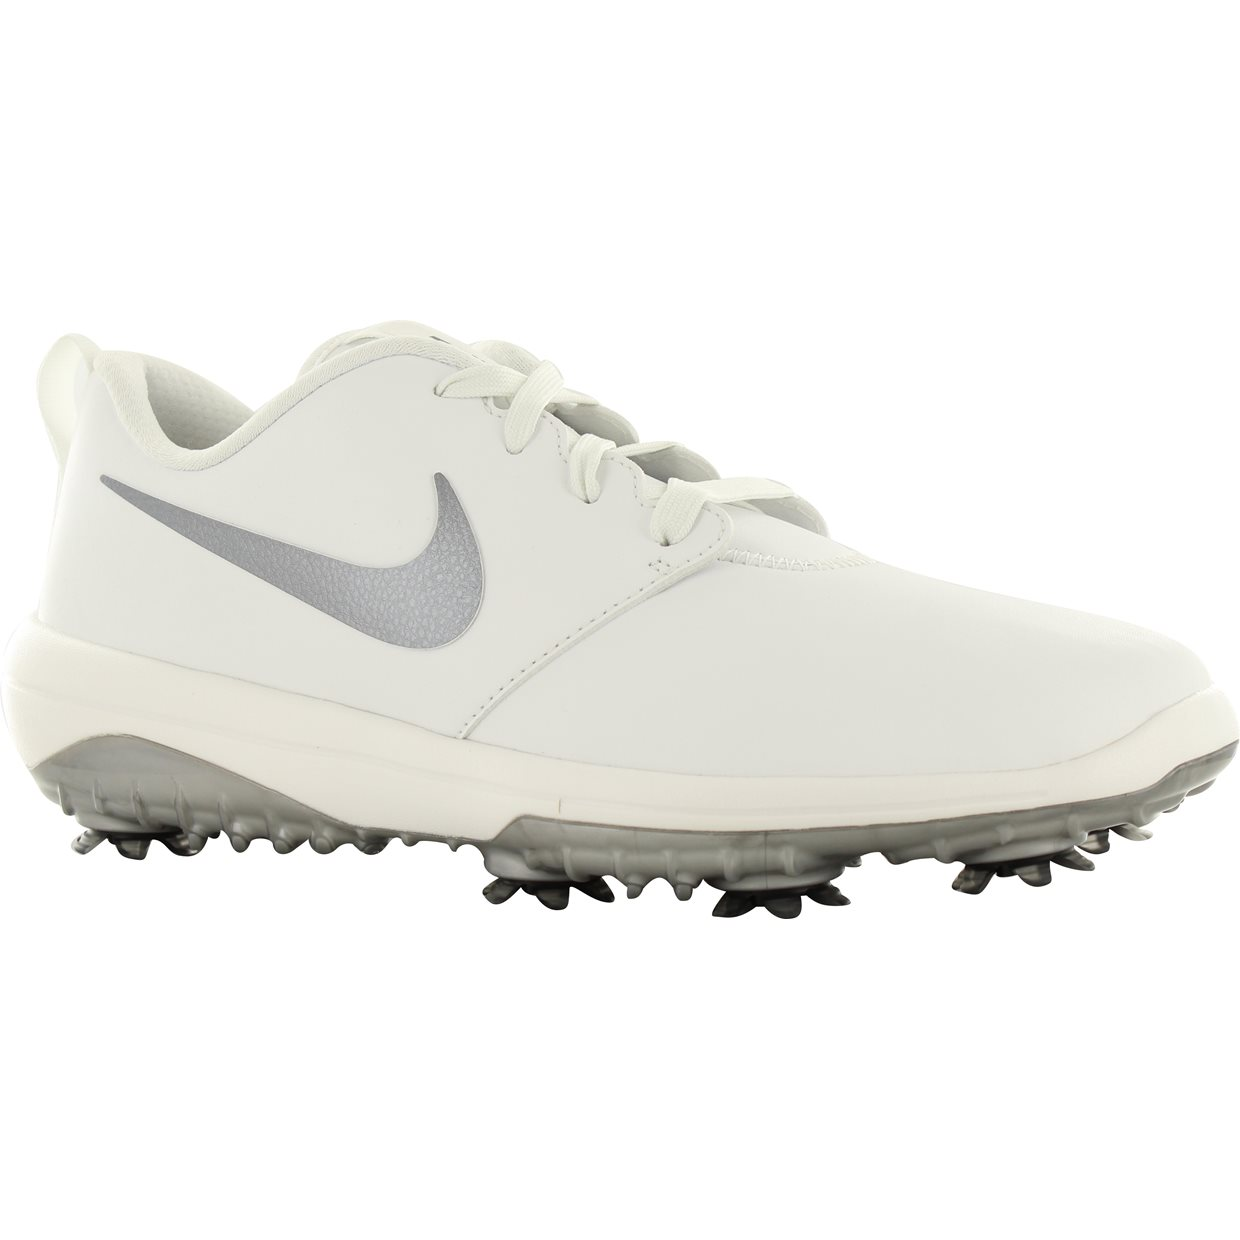 the latest e8a82 117c4 Nike Roshe G Tour Golf Shoe Shoes. Drag 360 Left or Right to View.  Alternate Product Image View 1 ...